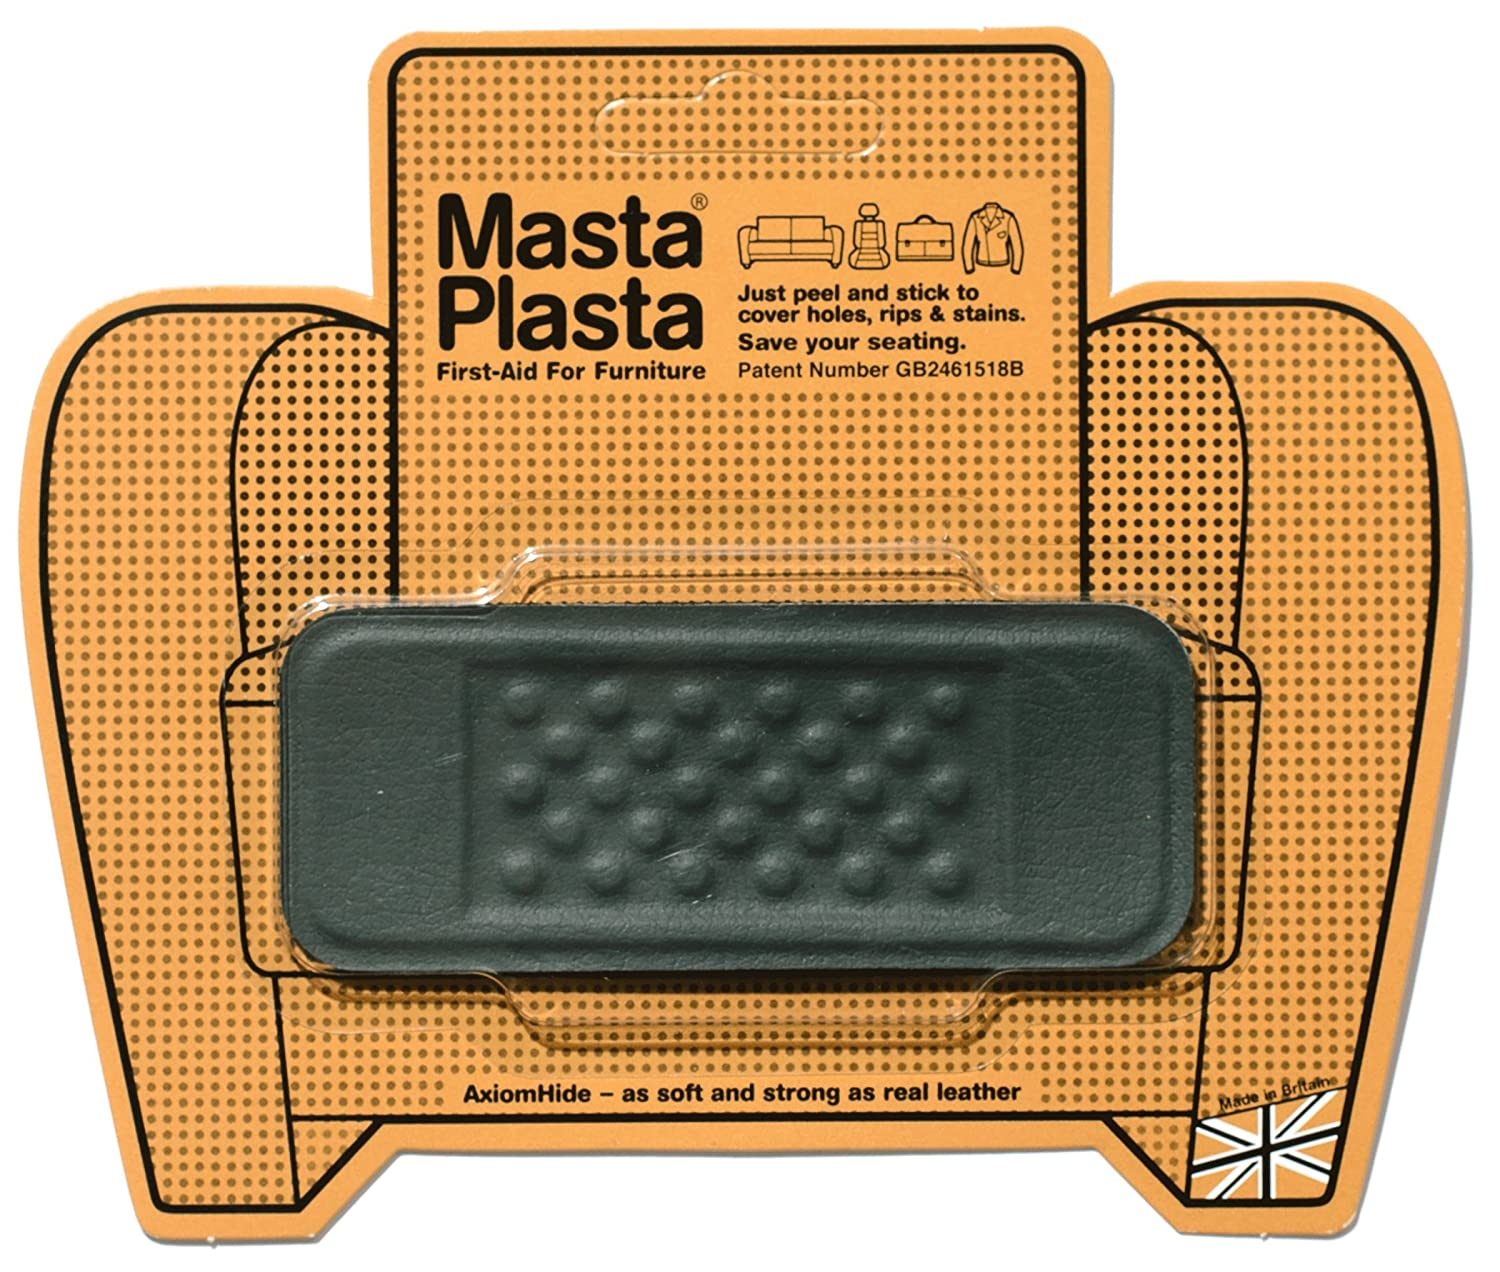 Leather Patch For Sofa: Aid Peel Stick Leather Repair MASTAPLASTA Patch For Holes